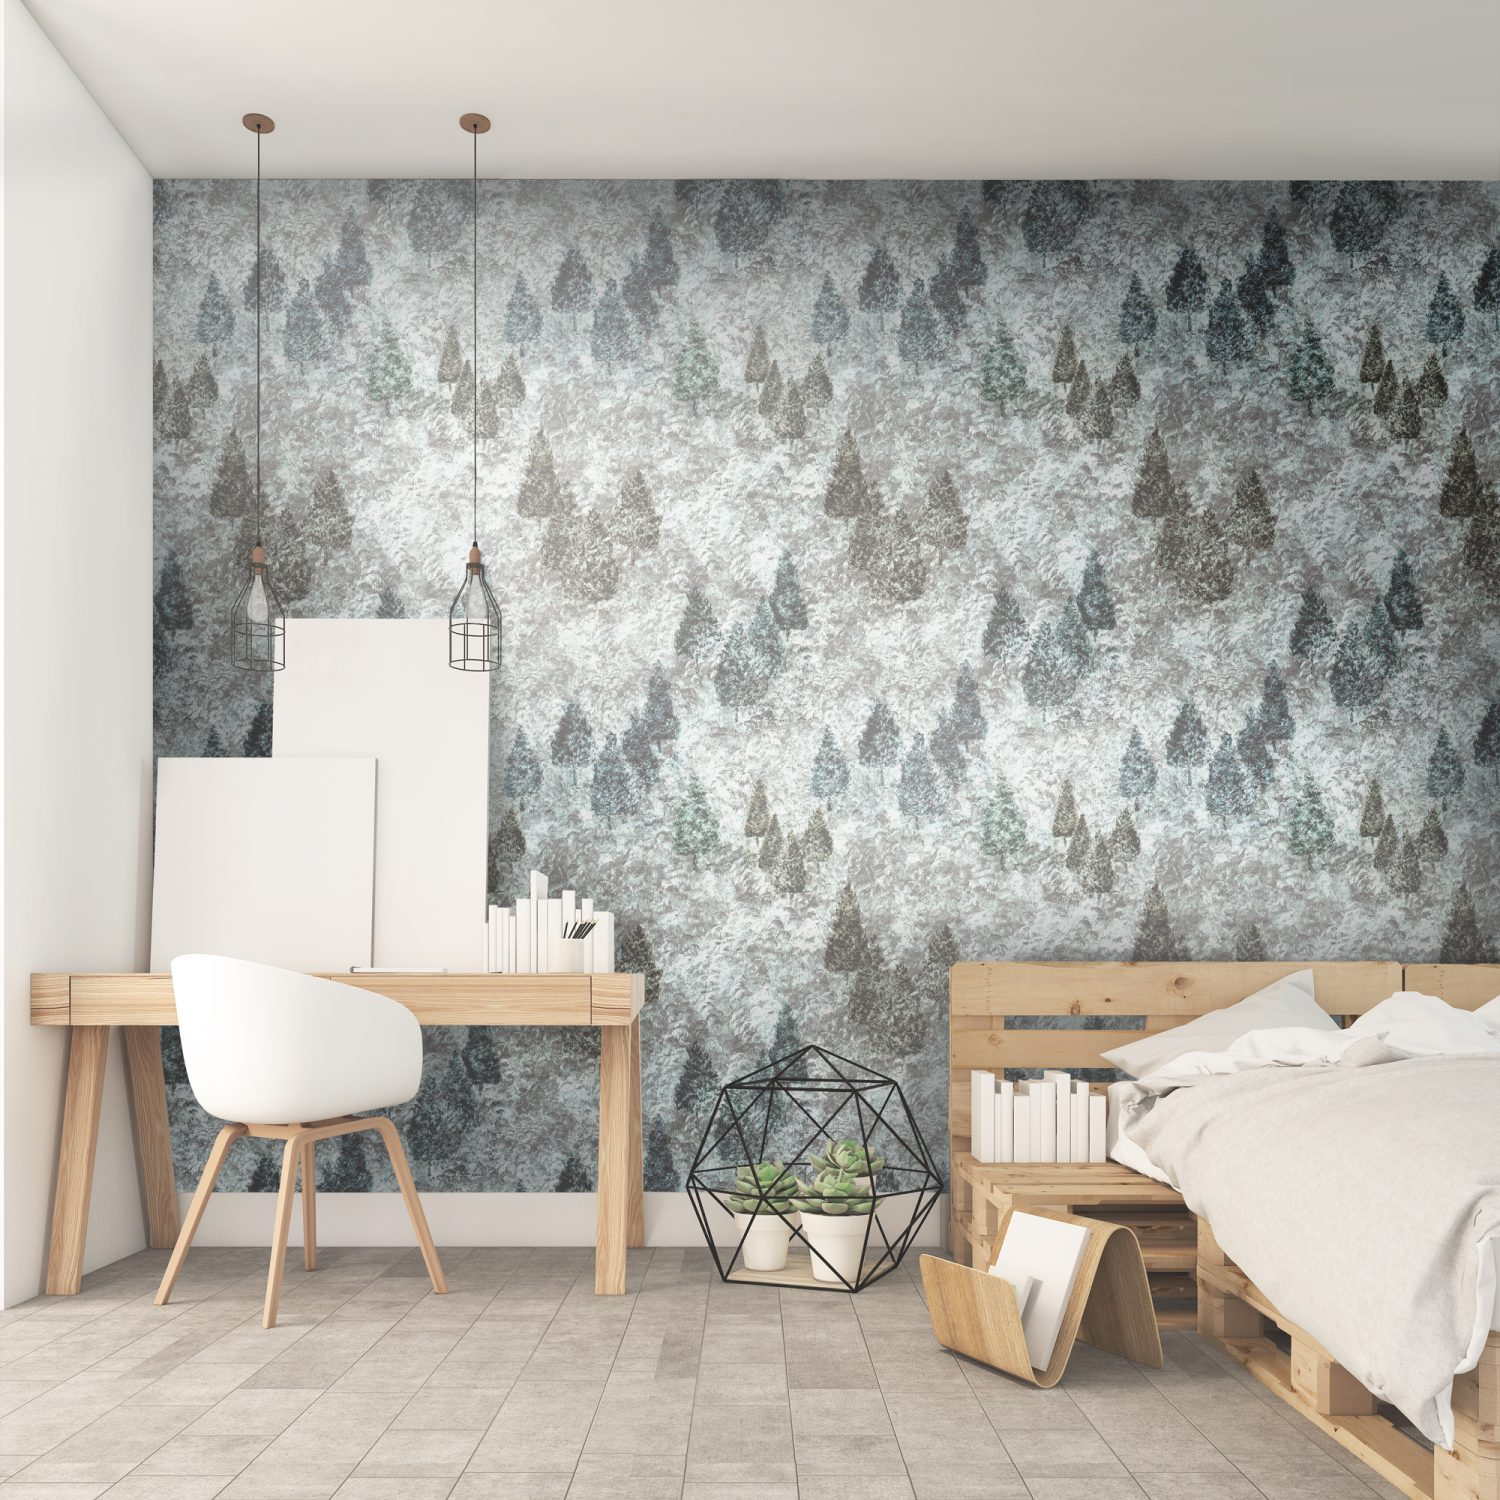 Blue Tetrad Forestry Woodland trees wallpaper with a forest scene print. Acyclic painting with a